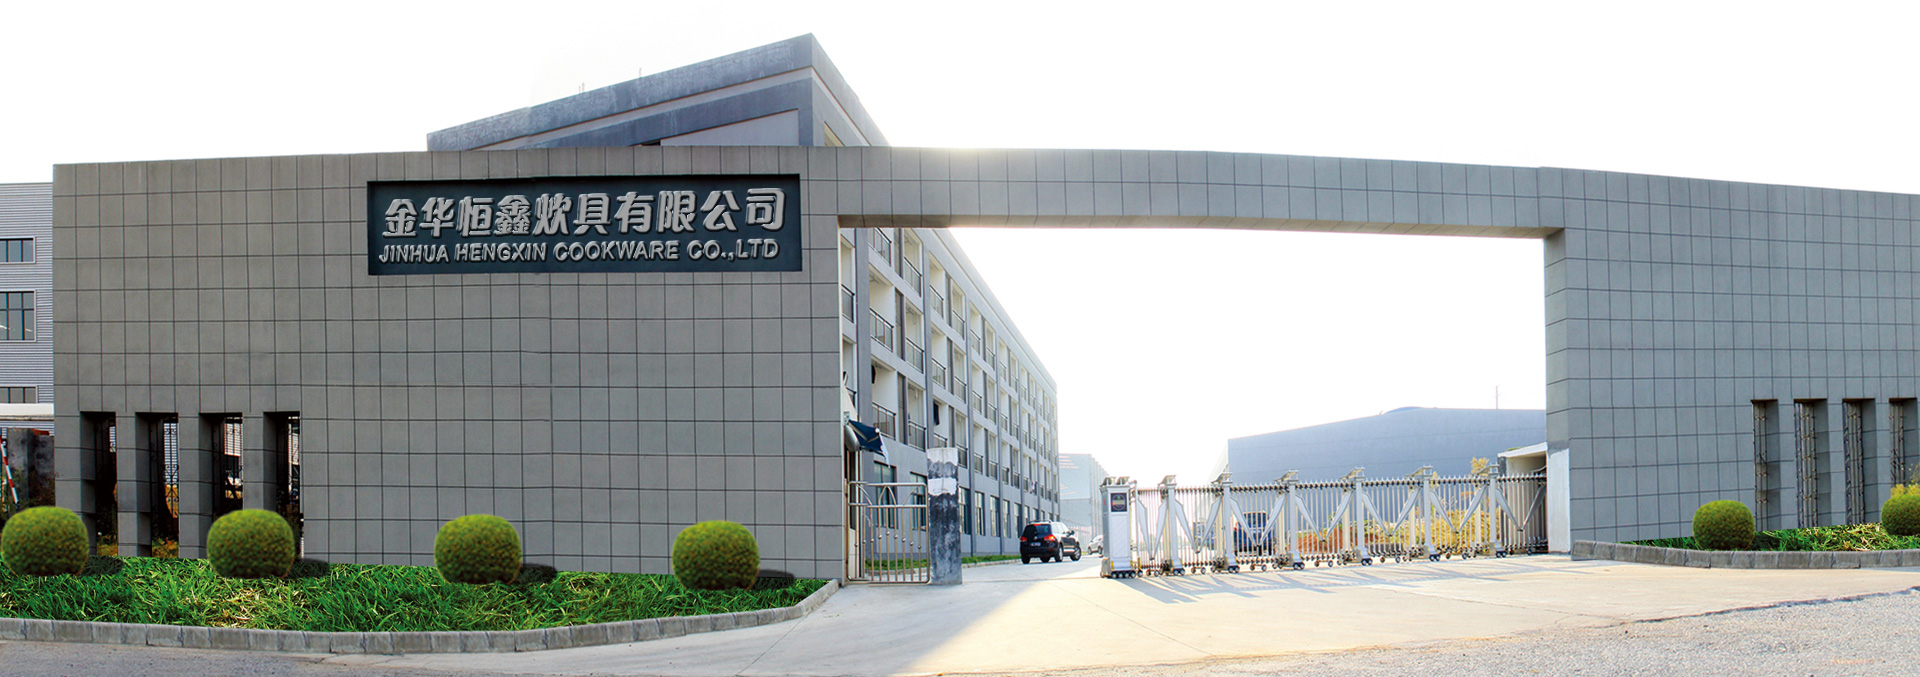 Jinhua Hengxin Cookware Co., Ltd.